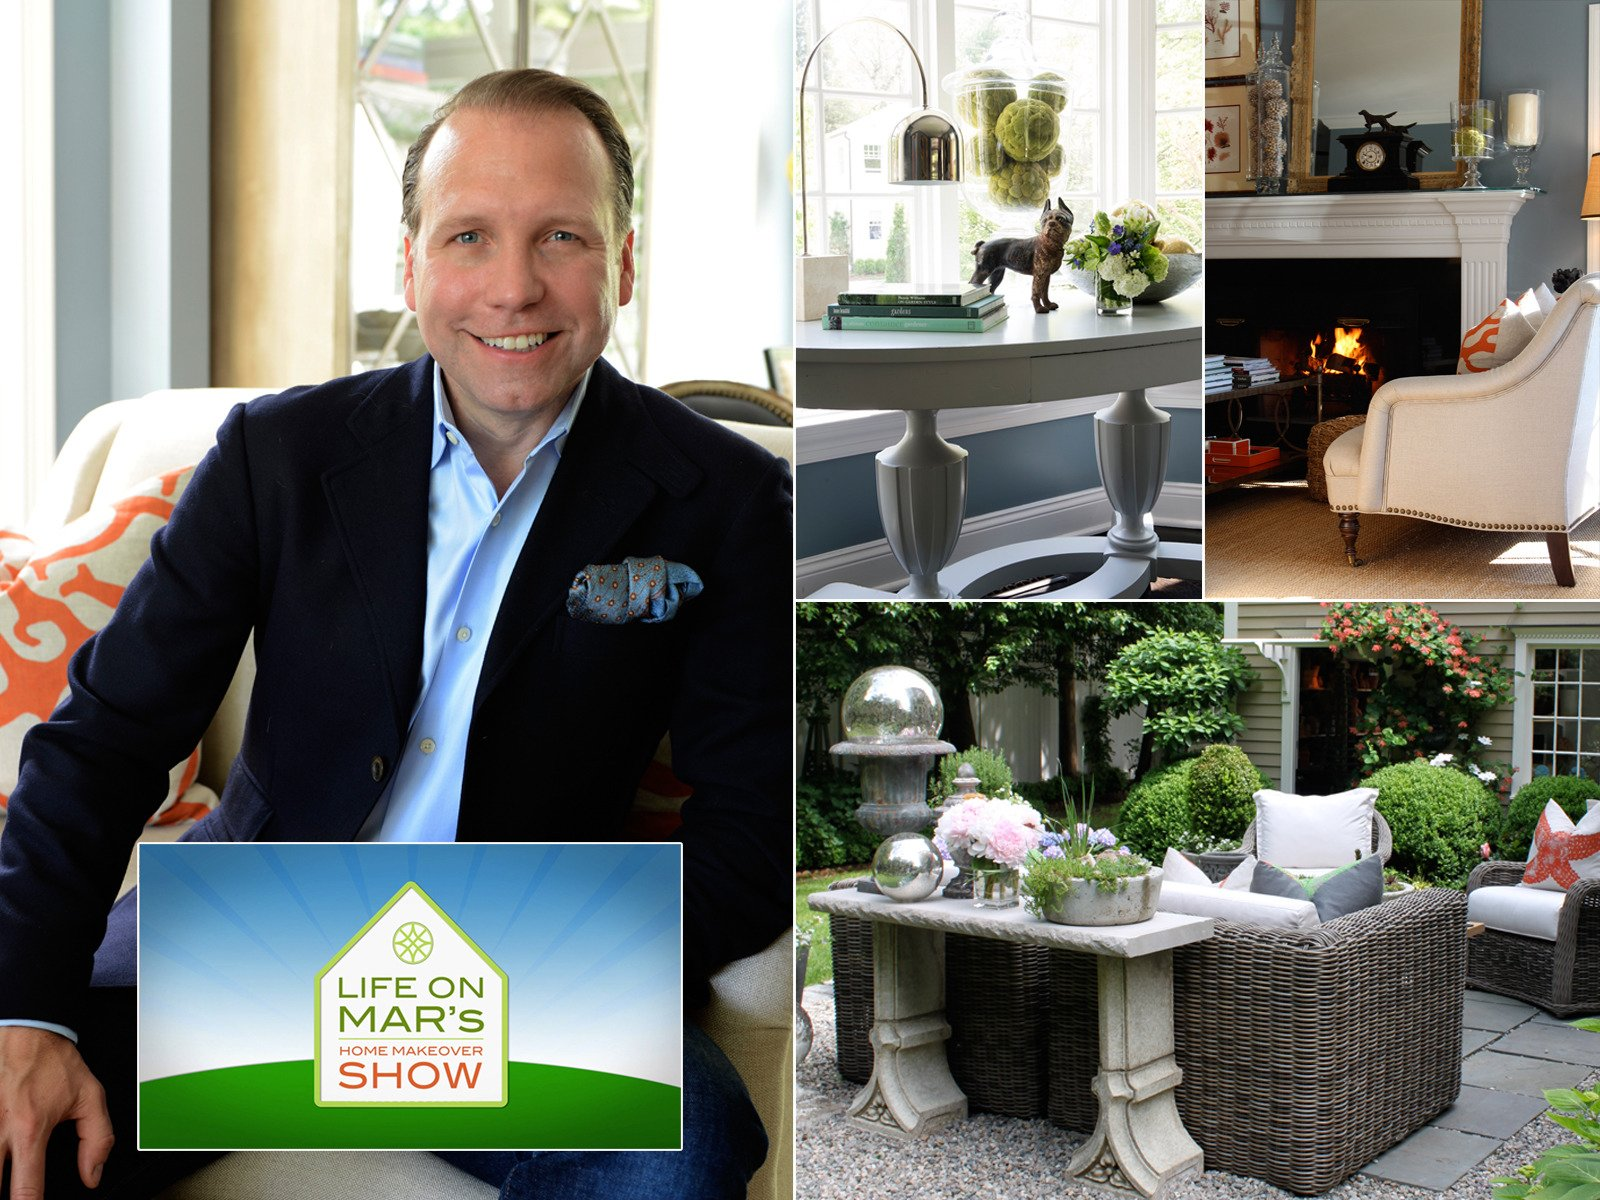 pleasing home and garden tv shows. Amazon com  Life on Mar s The Home Makeover Show Jennings Christopher Panton Paul Mitchell Digital Services LLC